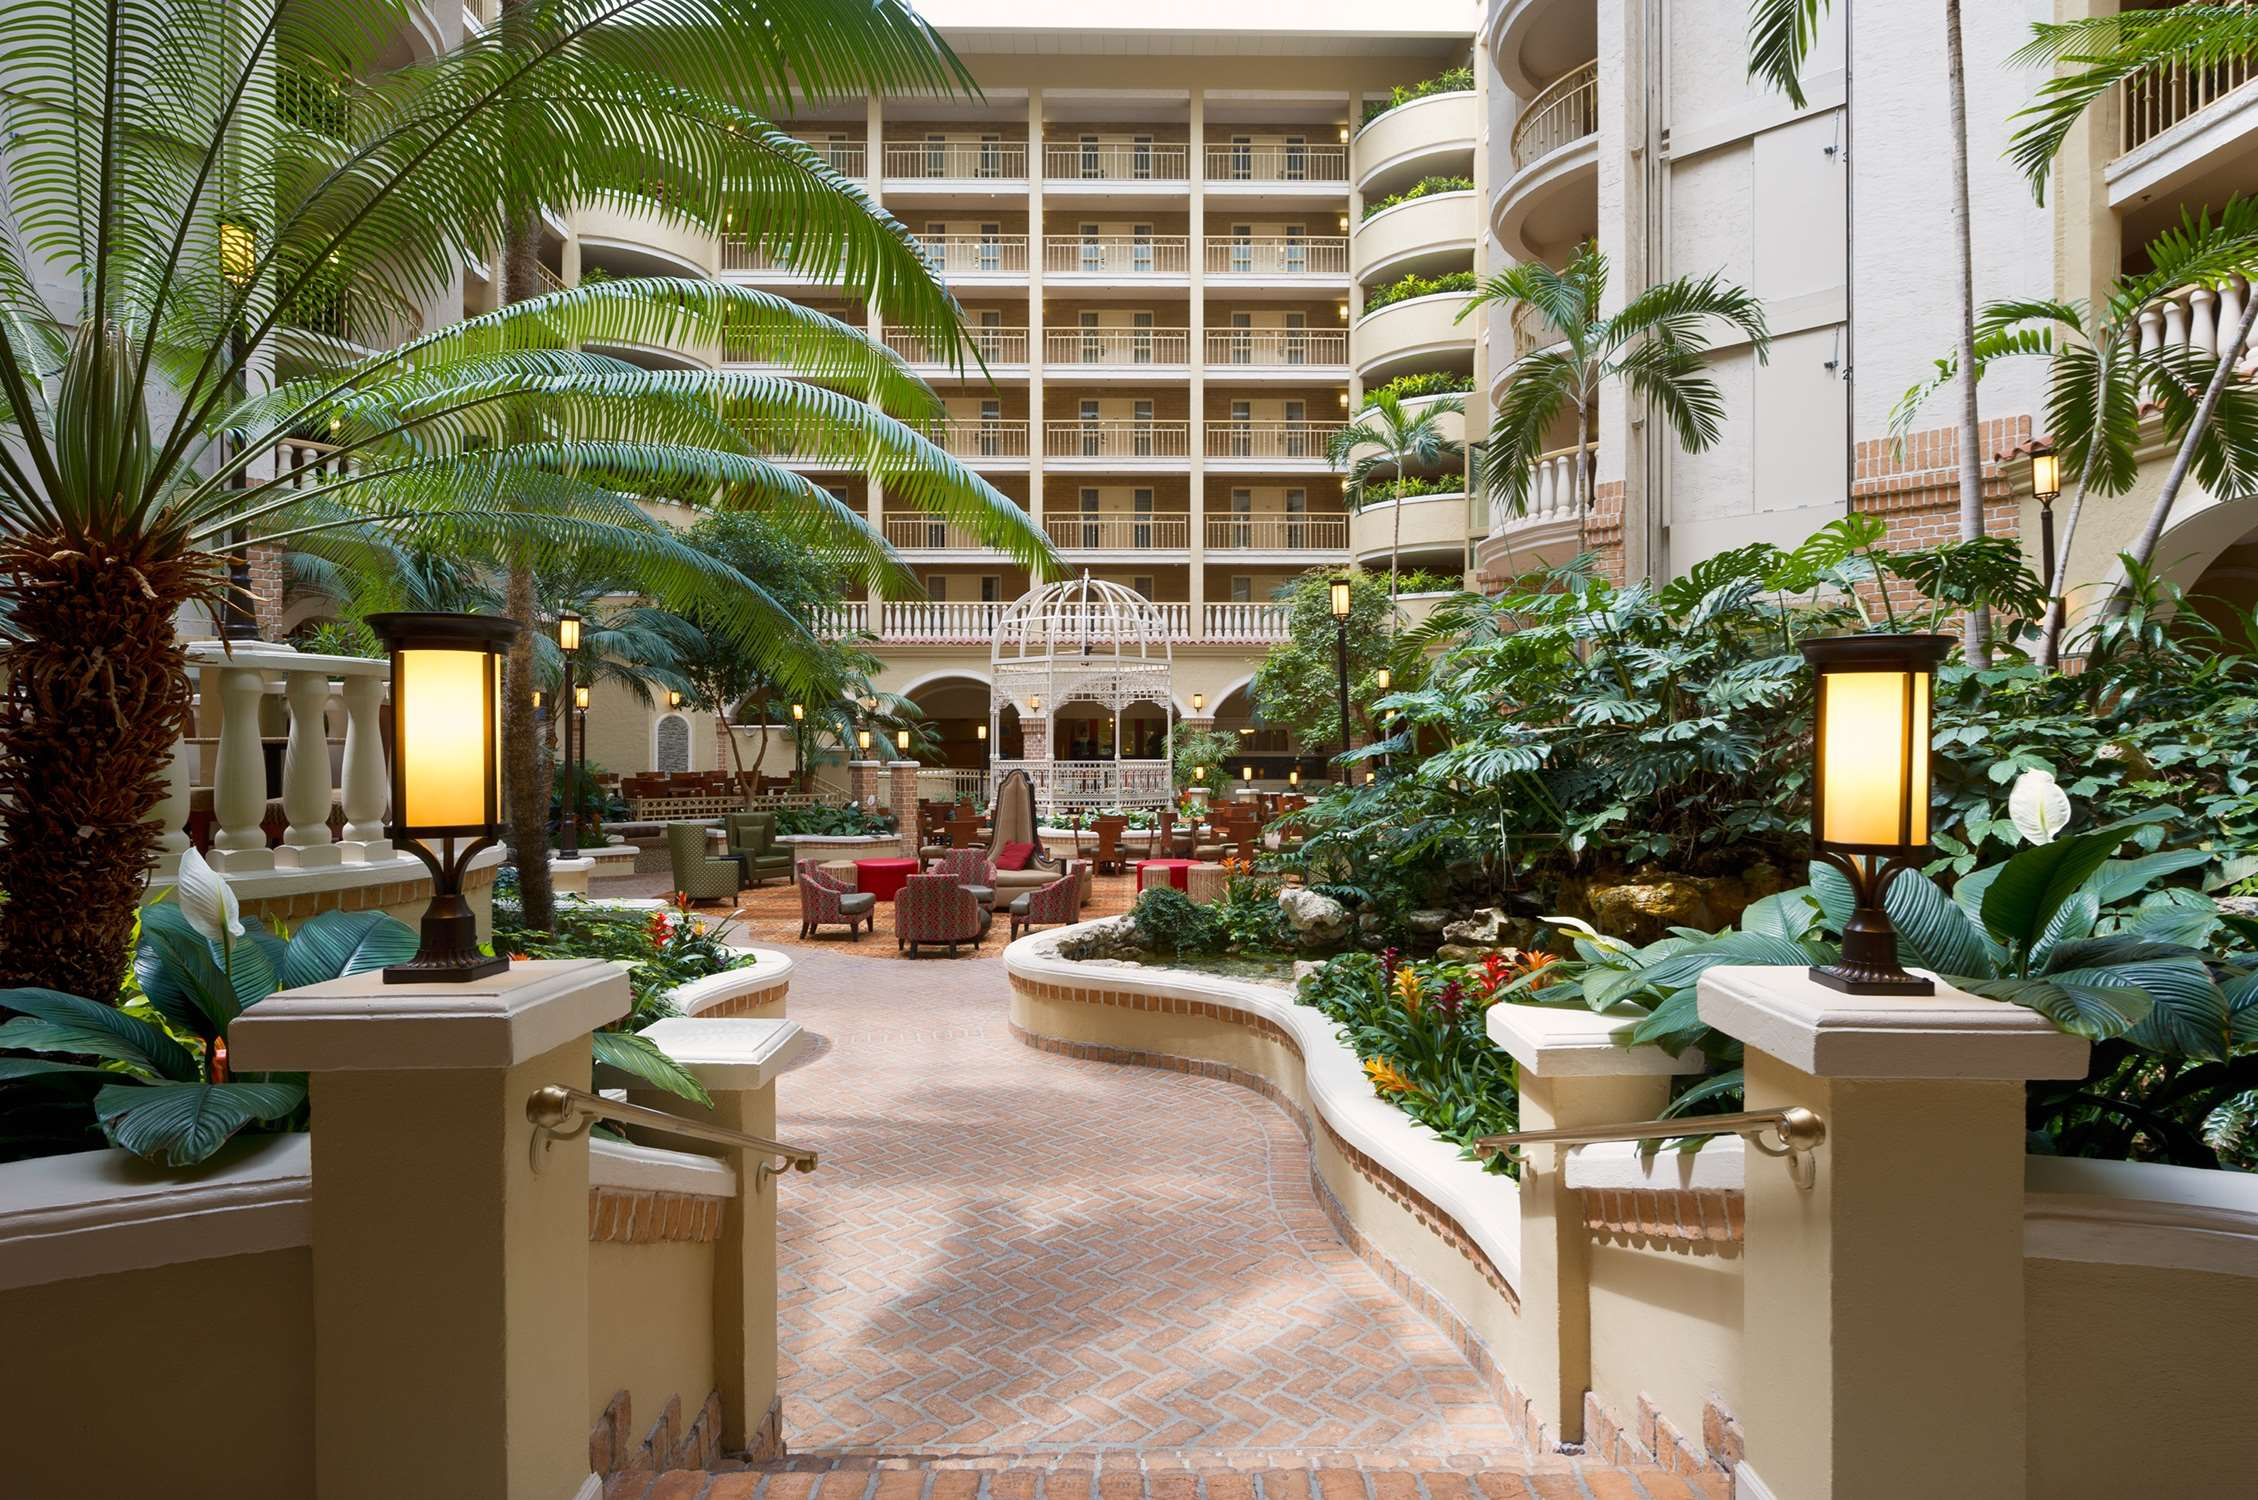 Embassy Suites by Hilton Orlando North image 16